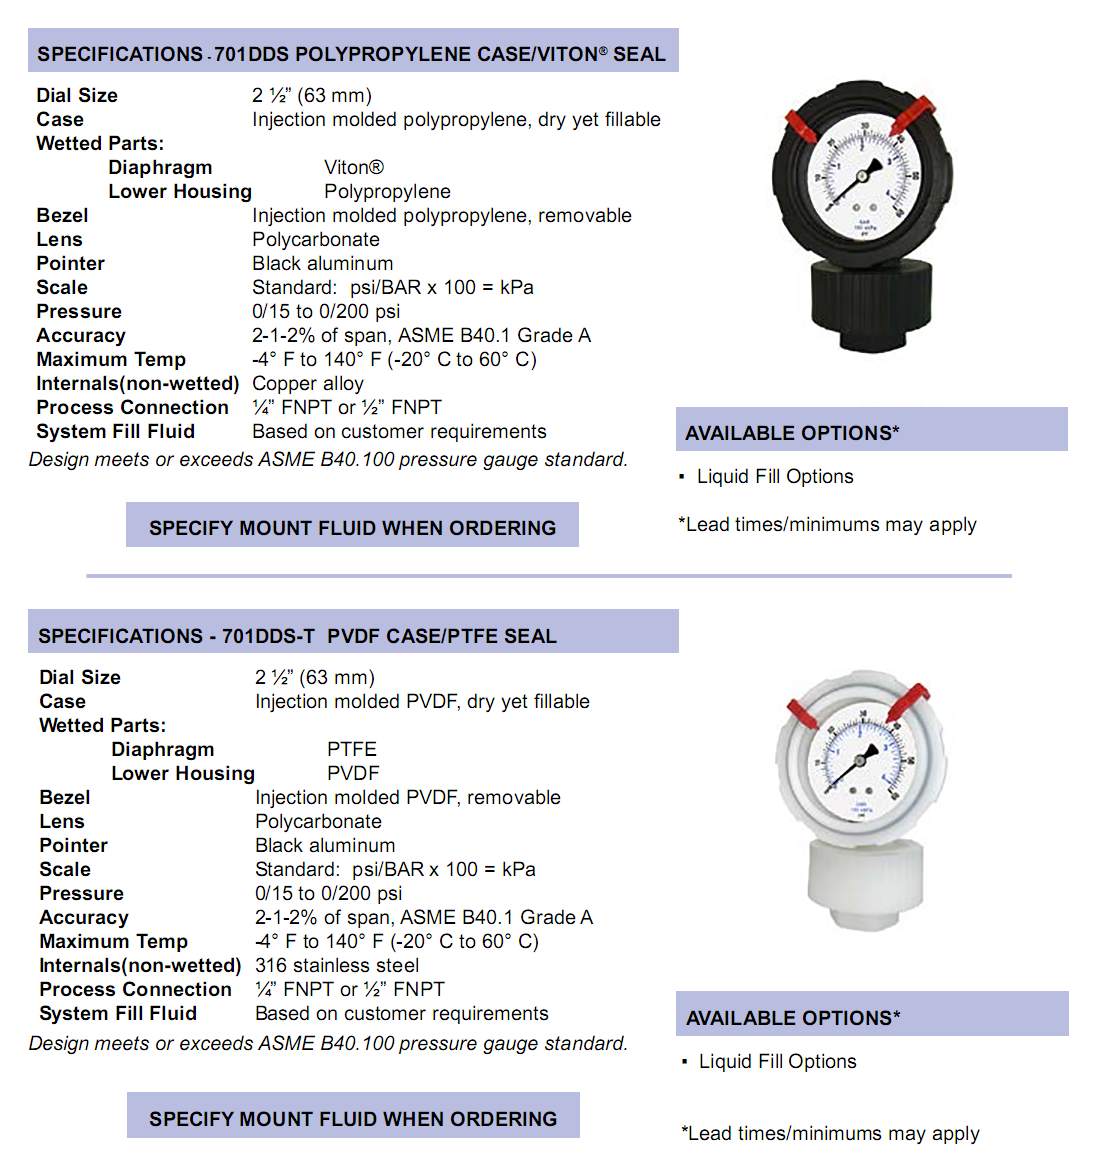 701dds-molded-gauge-and-diaphragm-seal-specifications